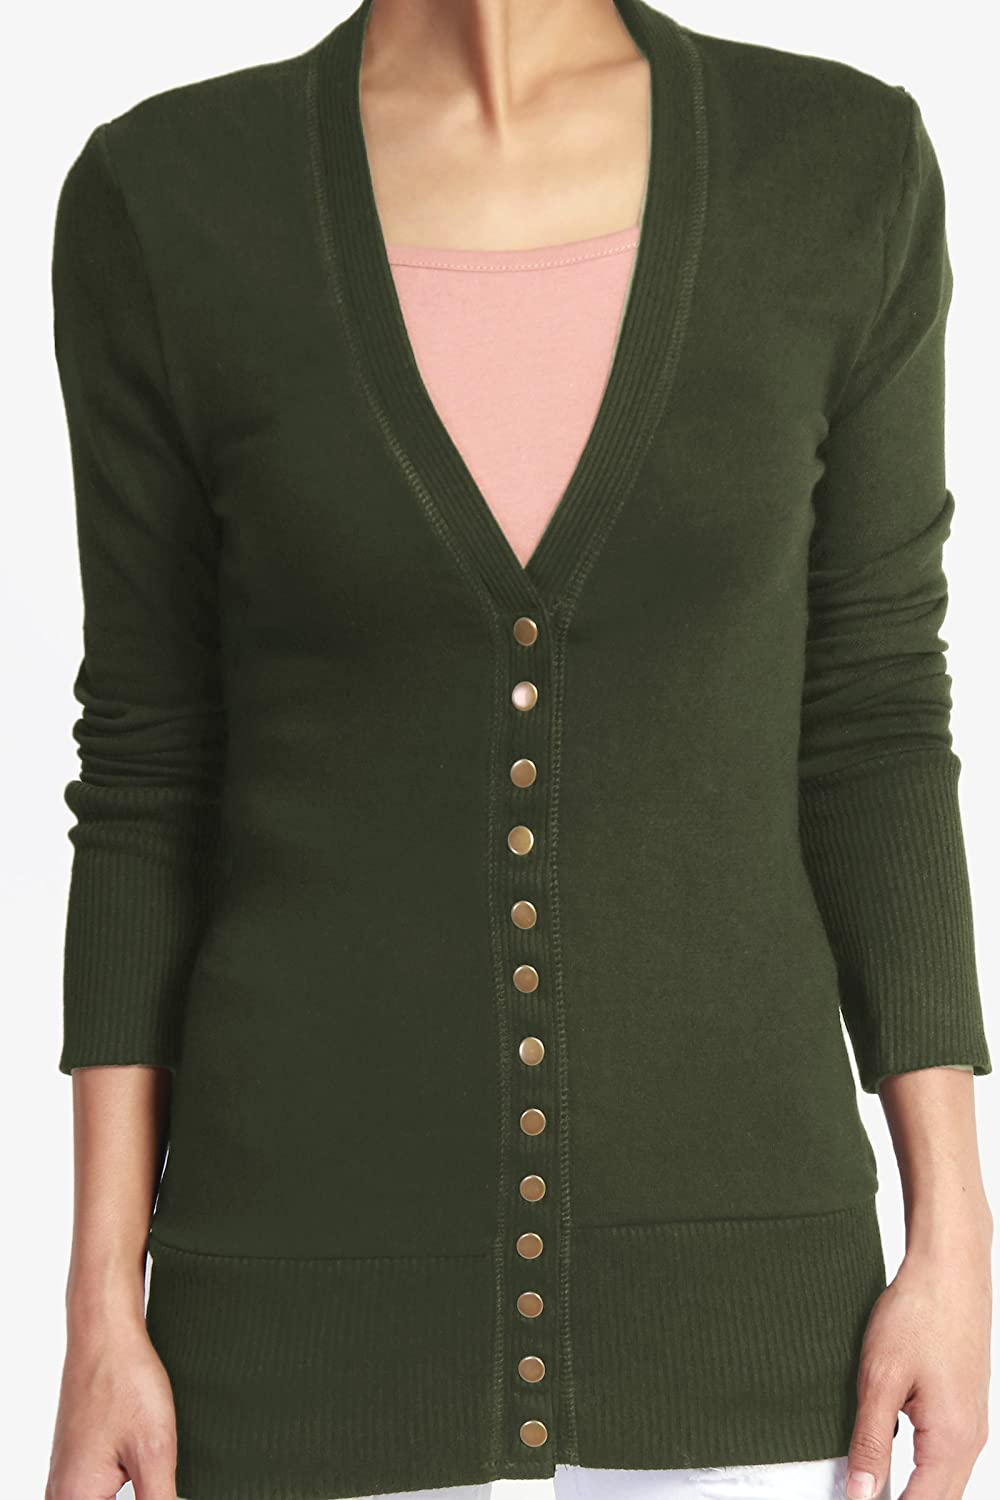 TheMogan Classic Snap Button Front V-Neck Long Sleeve Knit Cardigan   Amazon.ca  Clothing   Accessories a455338b2